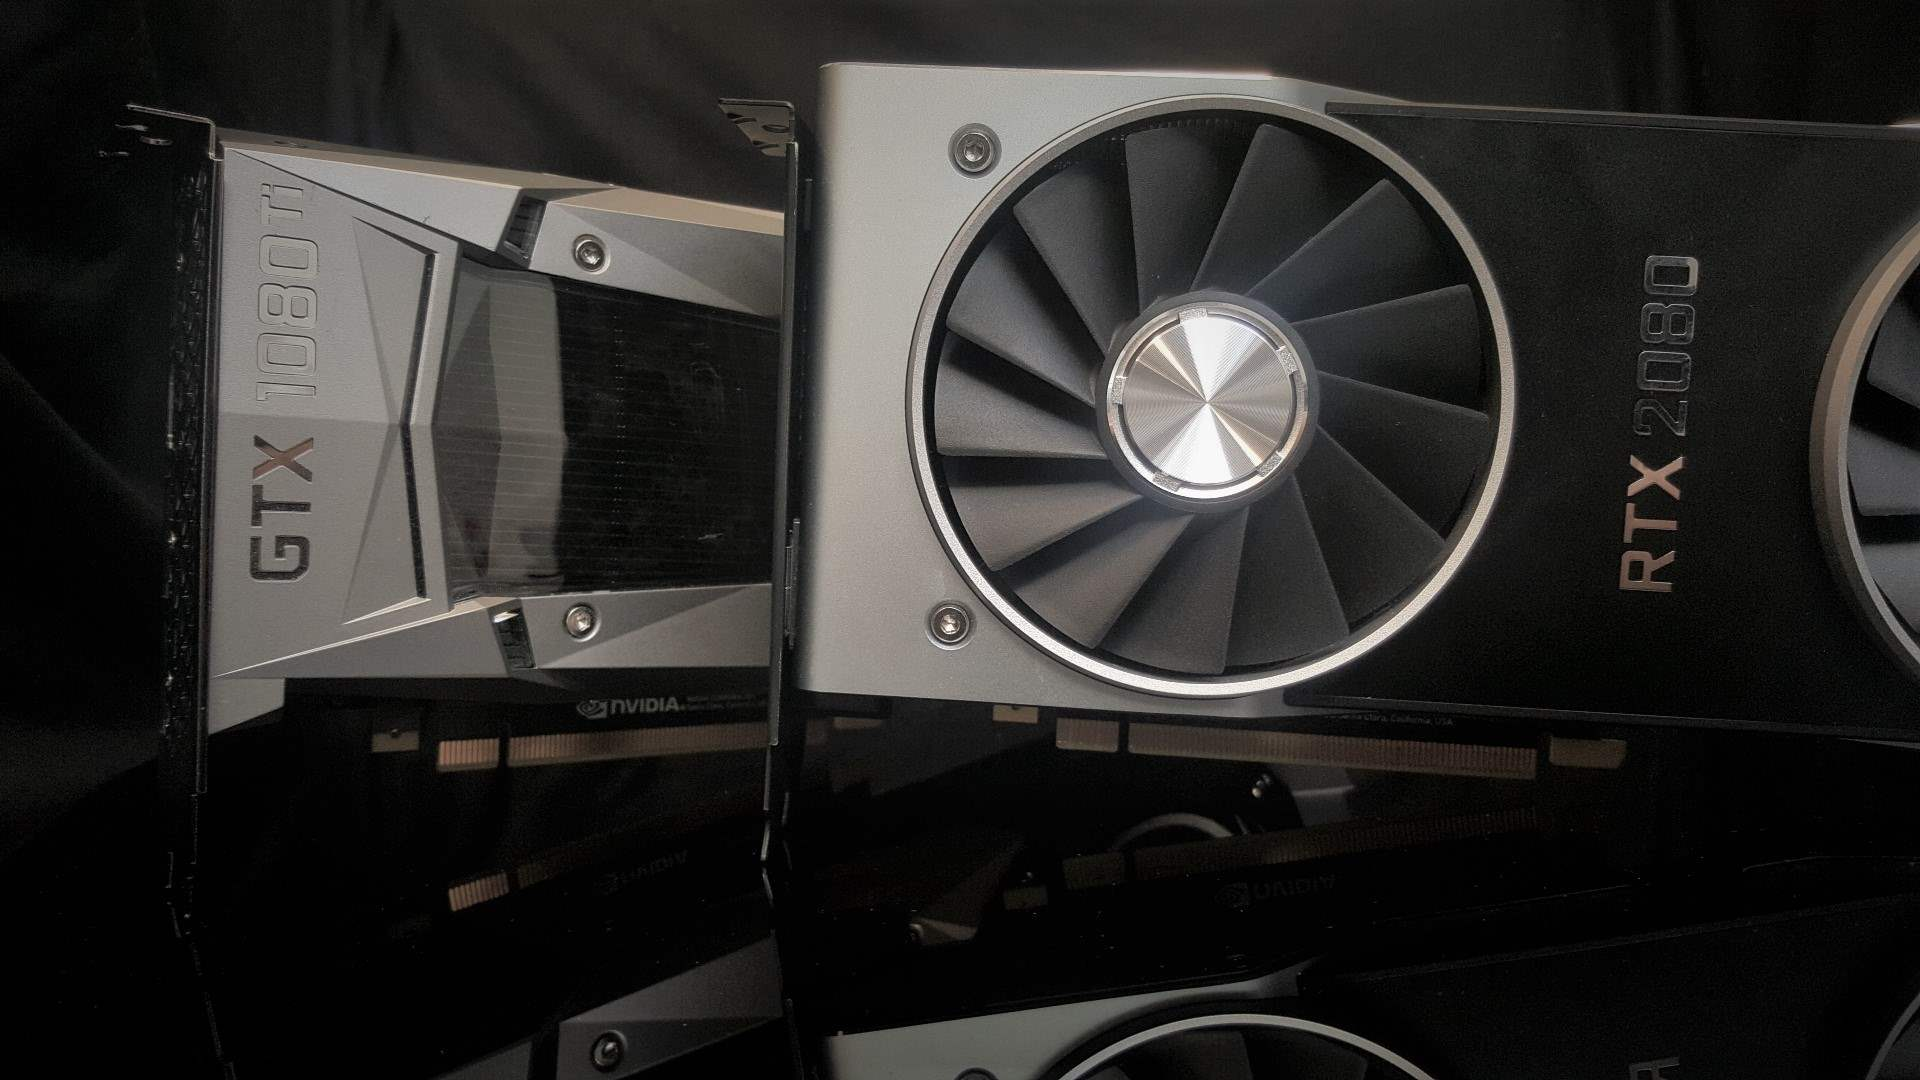 Nvidia RTX 2080 vs GTX 1080 Ti – which should you buy